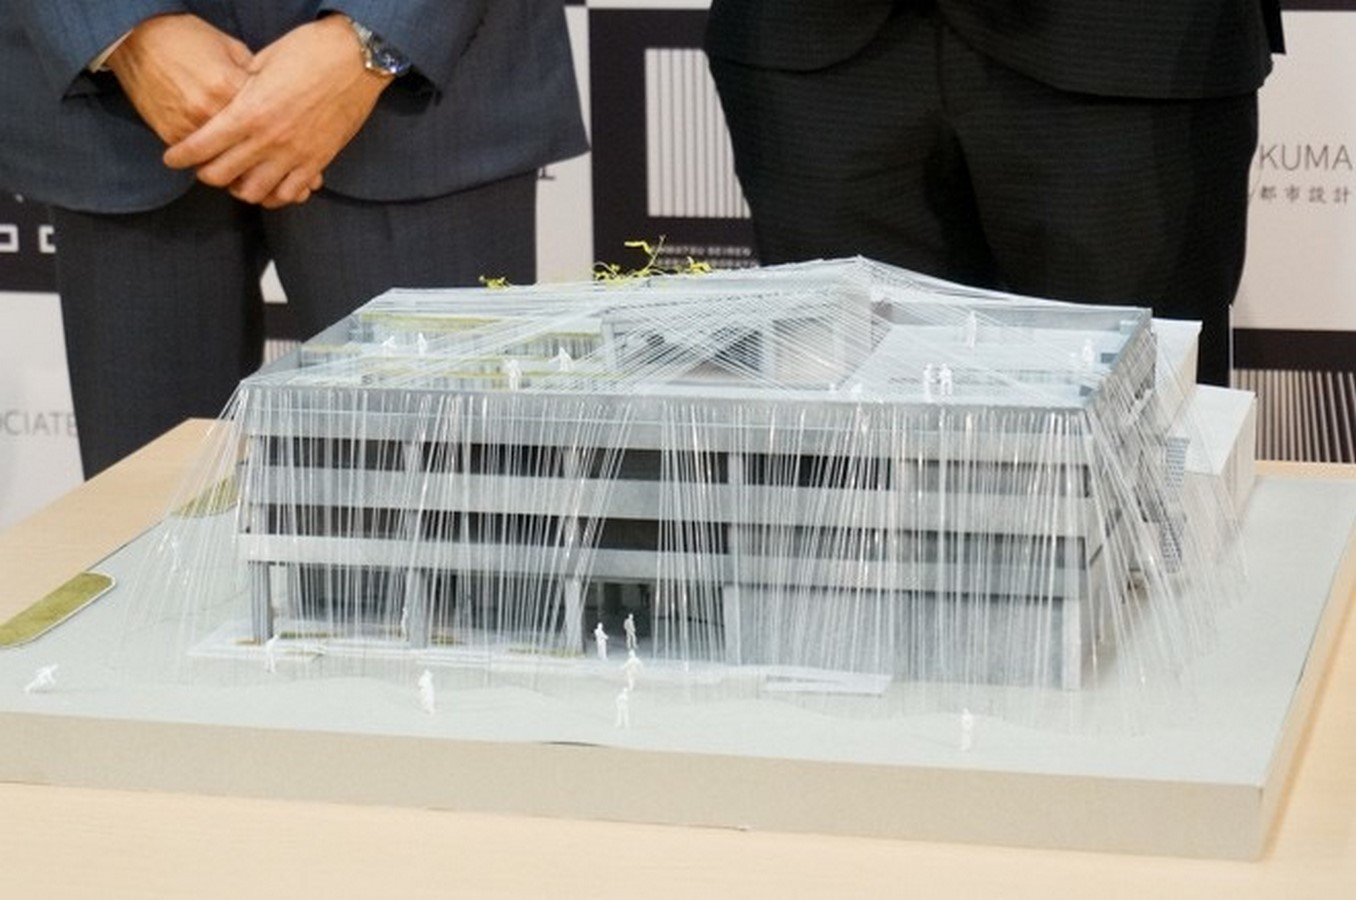 Earthquake Architecture: New Construction Techniques - Sheet12